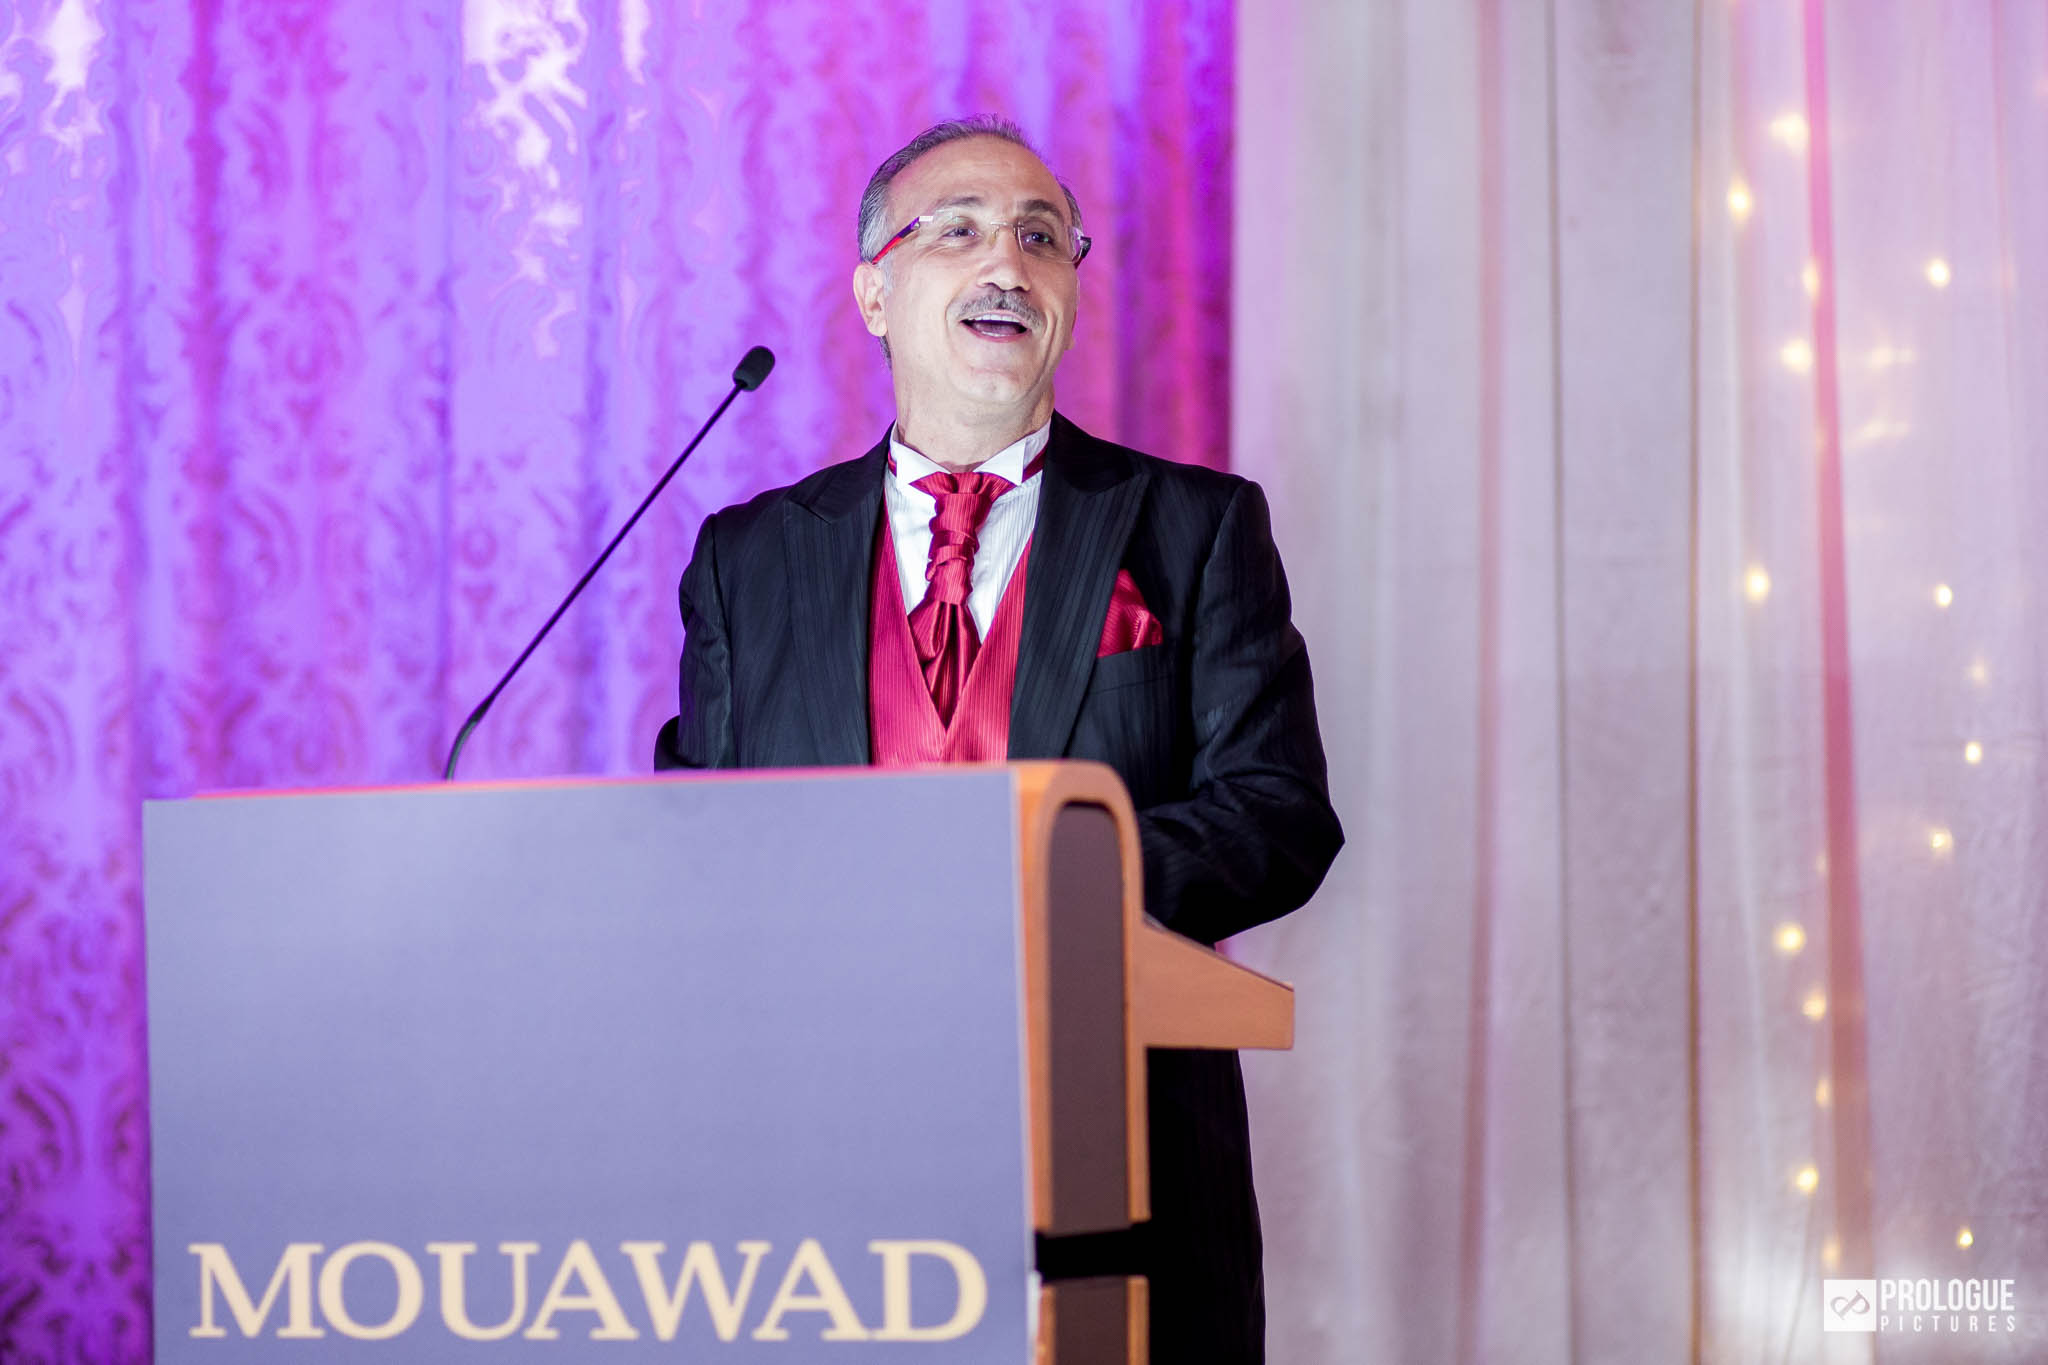 mouawad-125th-anniversary-event-photography-singapore-prologue-pictures-12